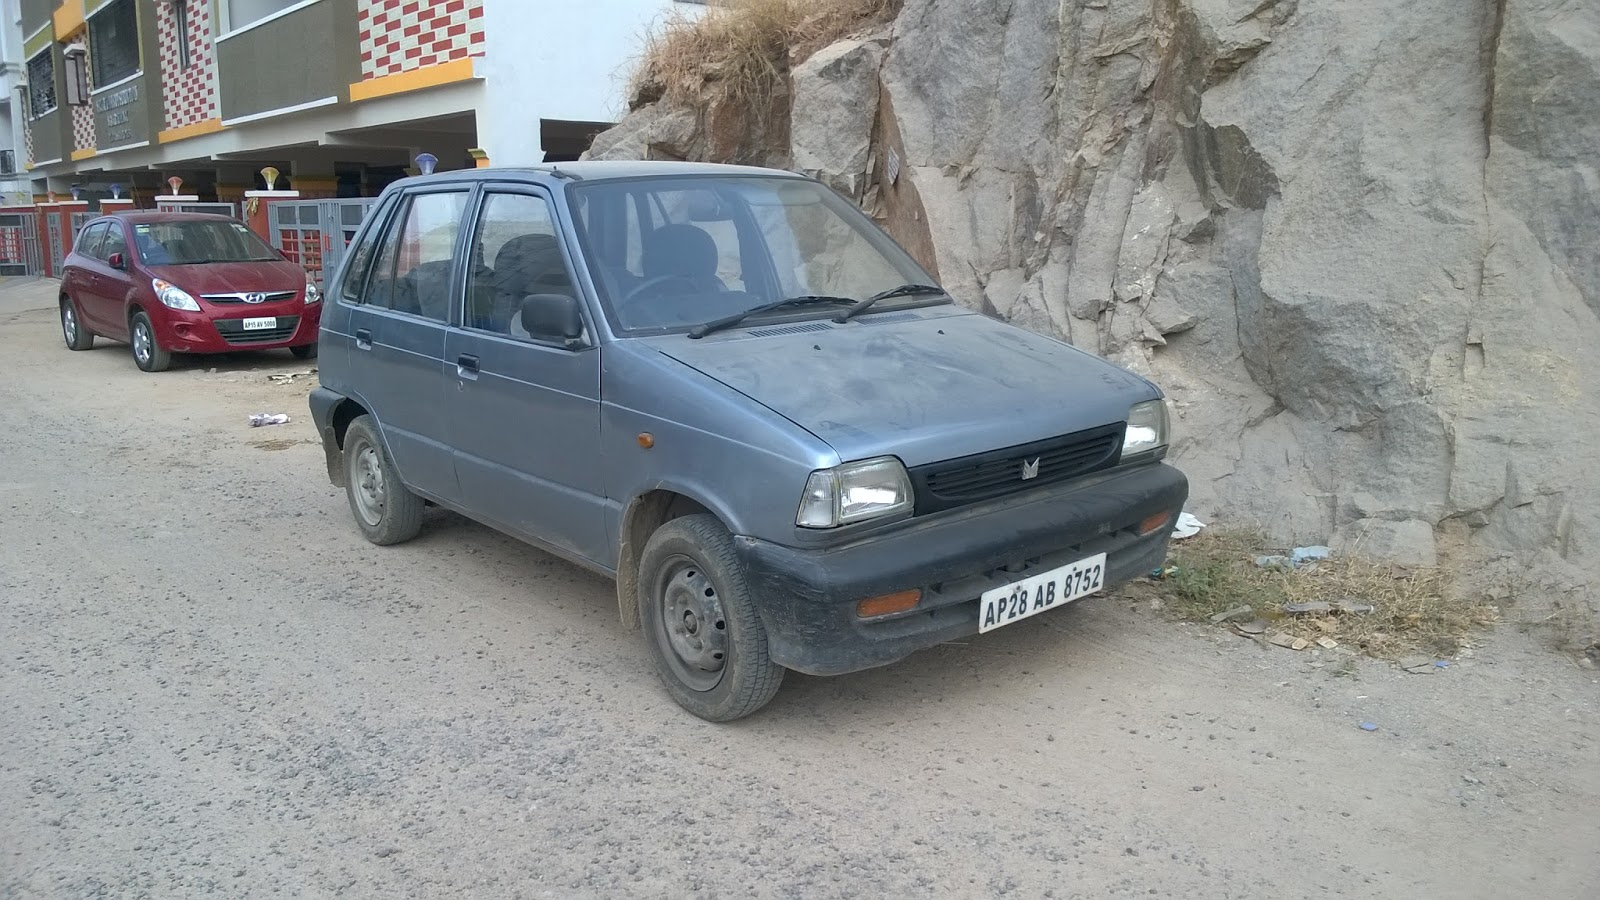 I bought an old maruti 800 about 6 months ago to handle local commutes after moving in to our new flat we realized it was important to have a 4 wheeler